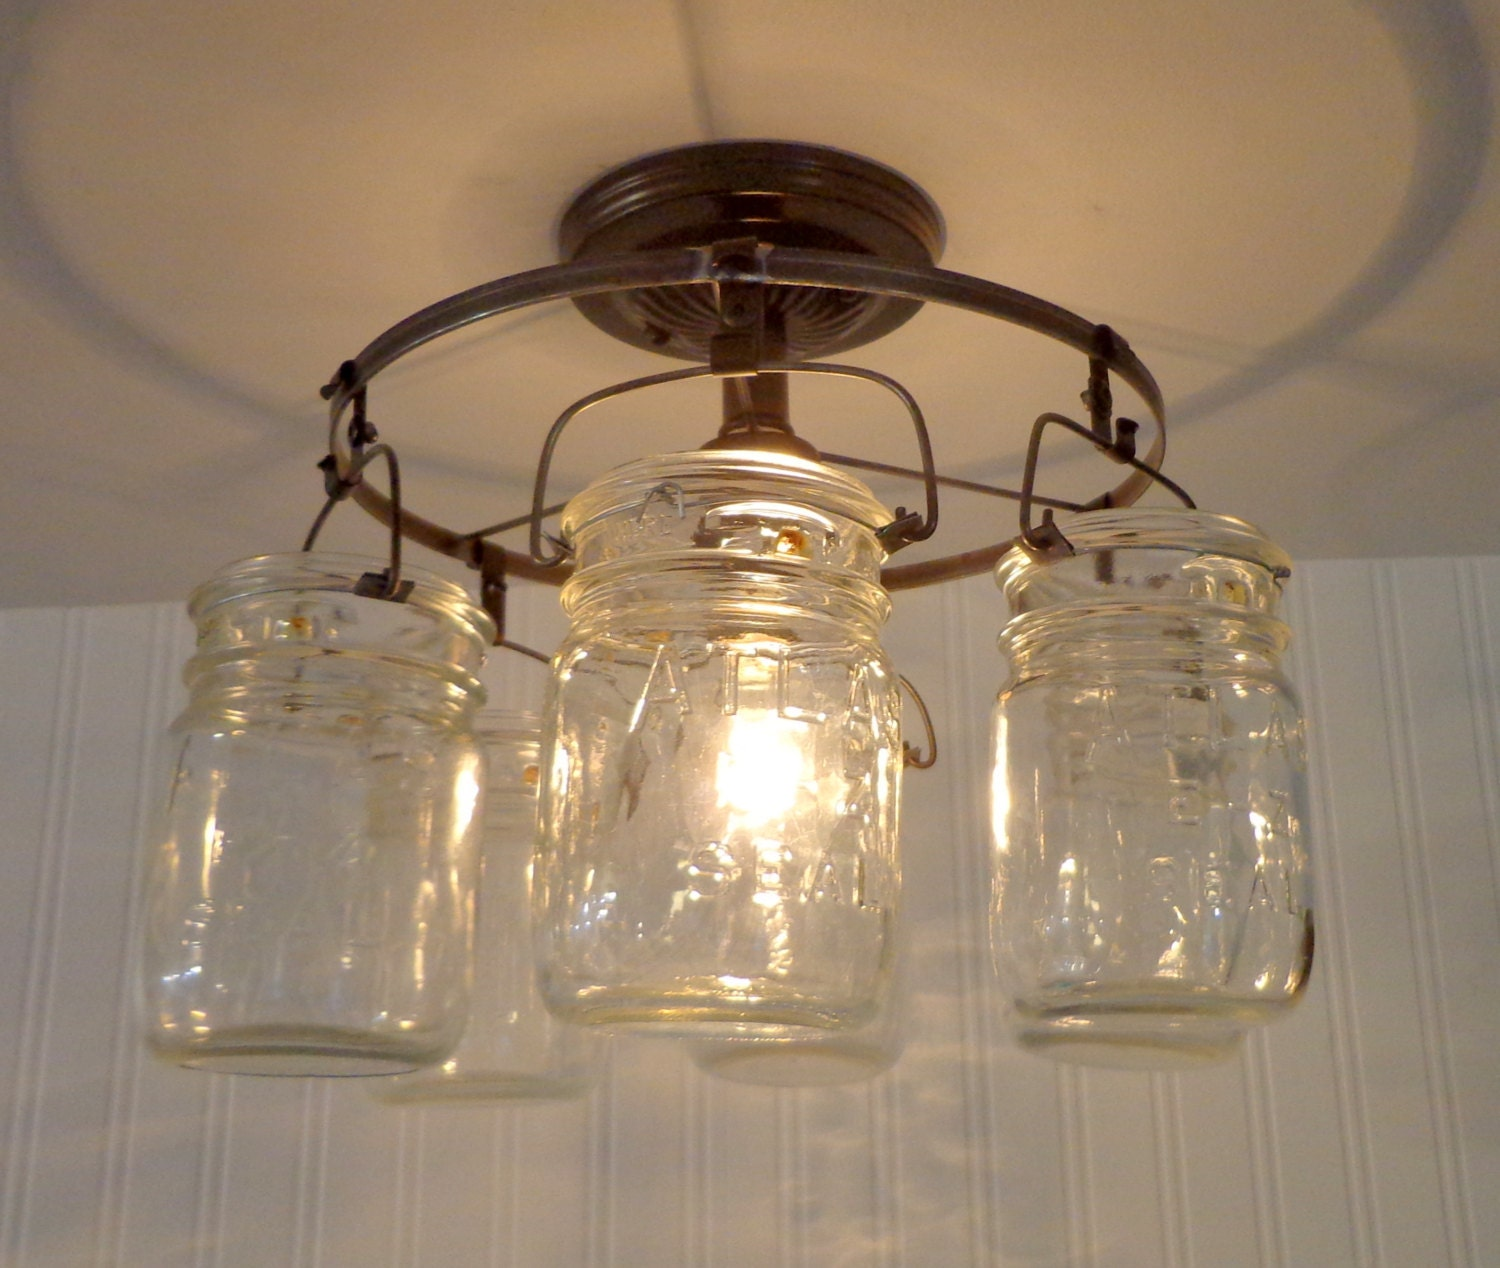 mason jar ceiling light fixture ring of hanging pints. Black Bedroom Furniture Sets. Home Design Ideas